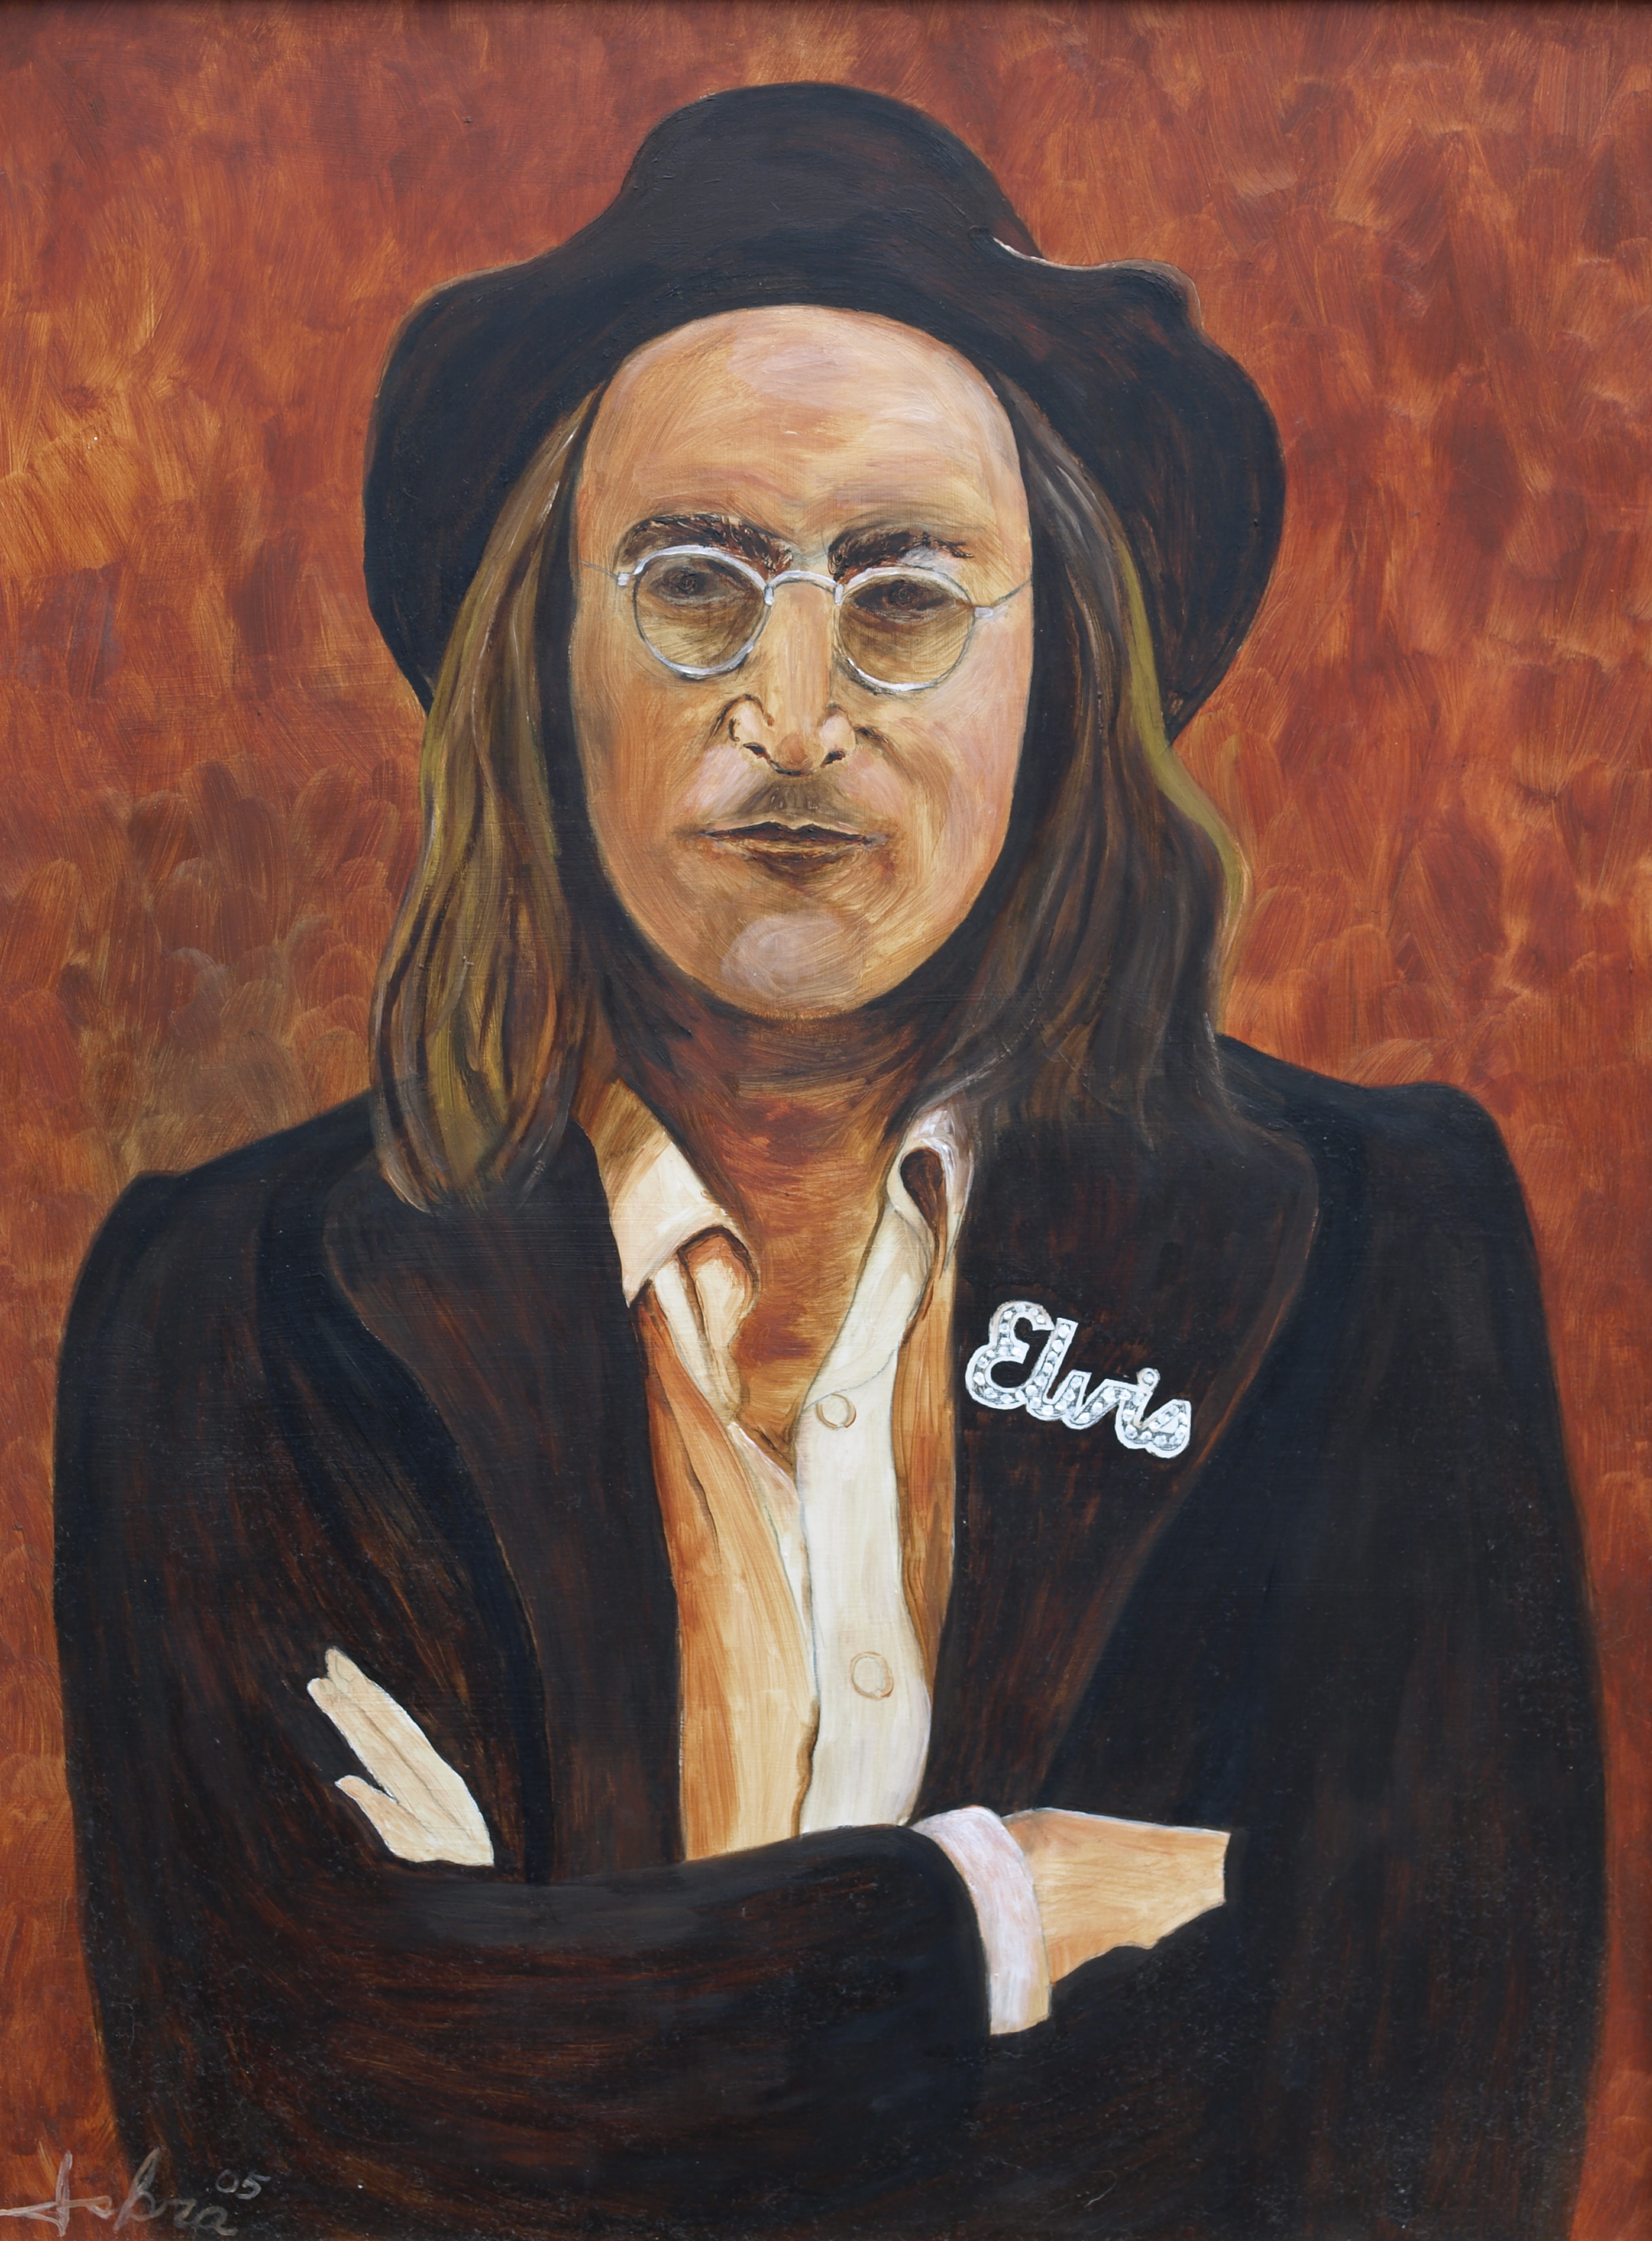 John Lennon Oil Painting By Michael Iskra Absolutearts Com